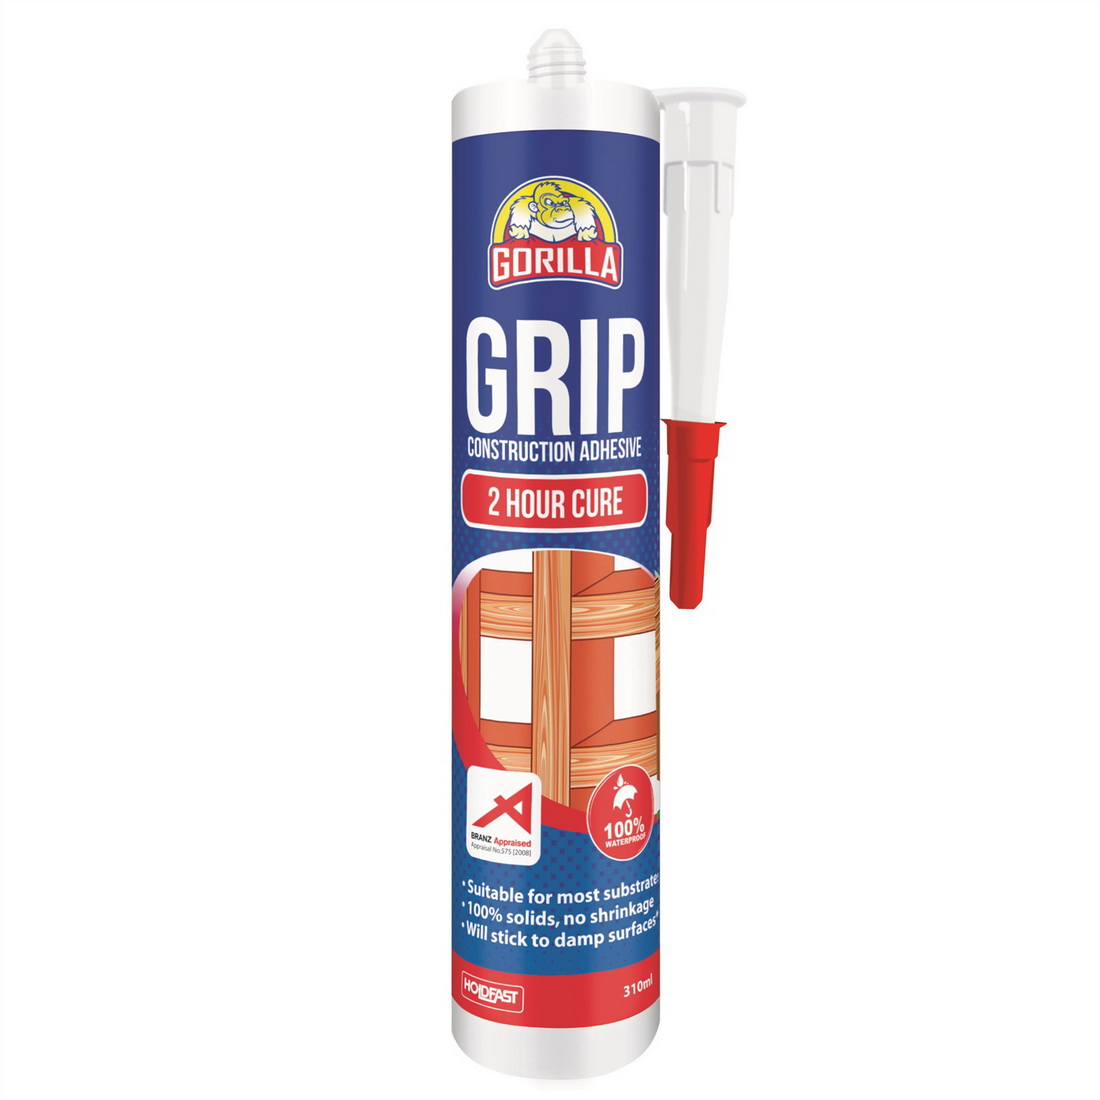 Grip 310mL 2 Hour Cure Construction Adhesive Translucent